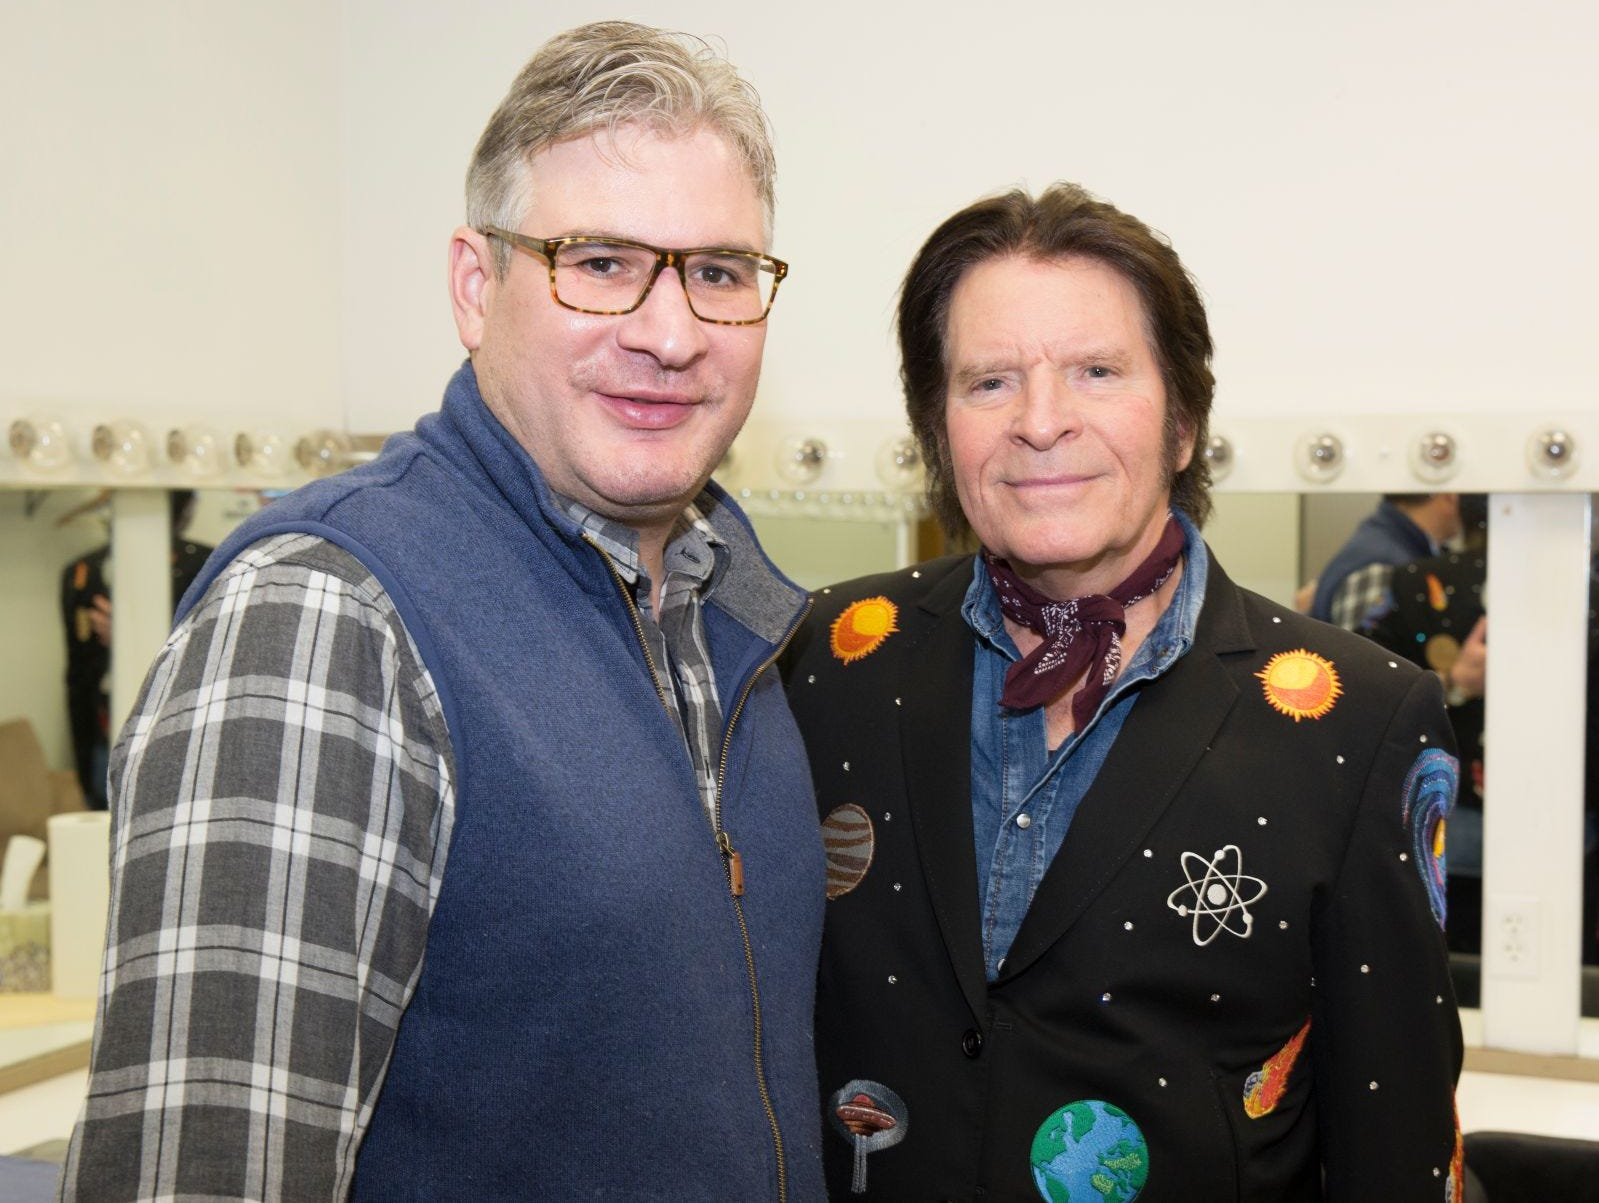 Stephen Borg and John Fogerty. BergenPAC held its annual fall gala featuring John Fogerty in Englewood. This year's honoree was Fernando Garip, from Wilmington Trust and M&T Bank. 11/08/2018